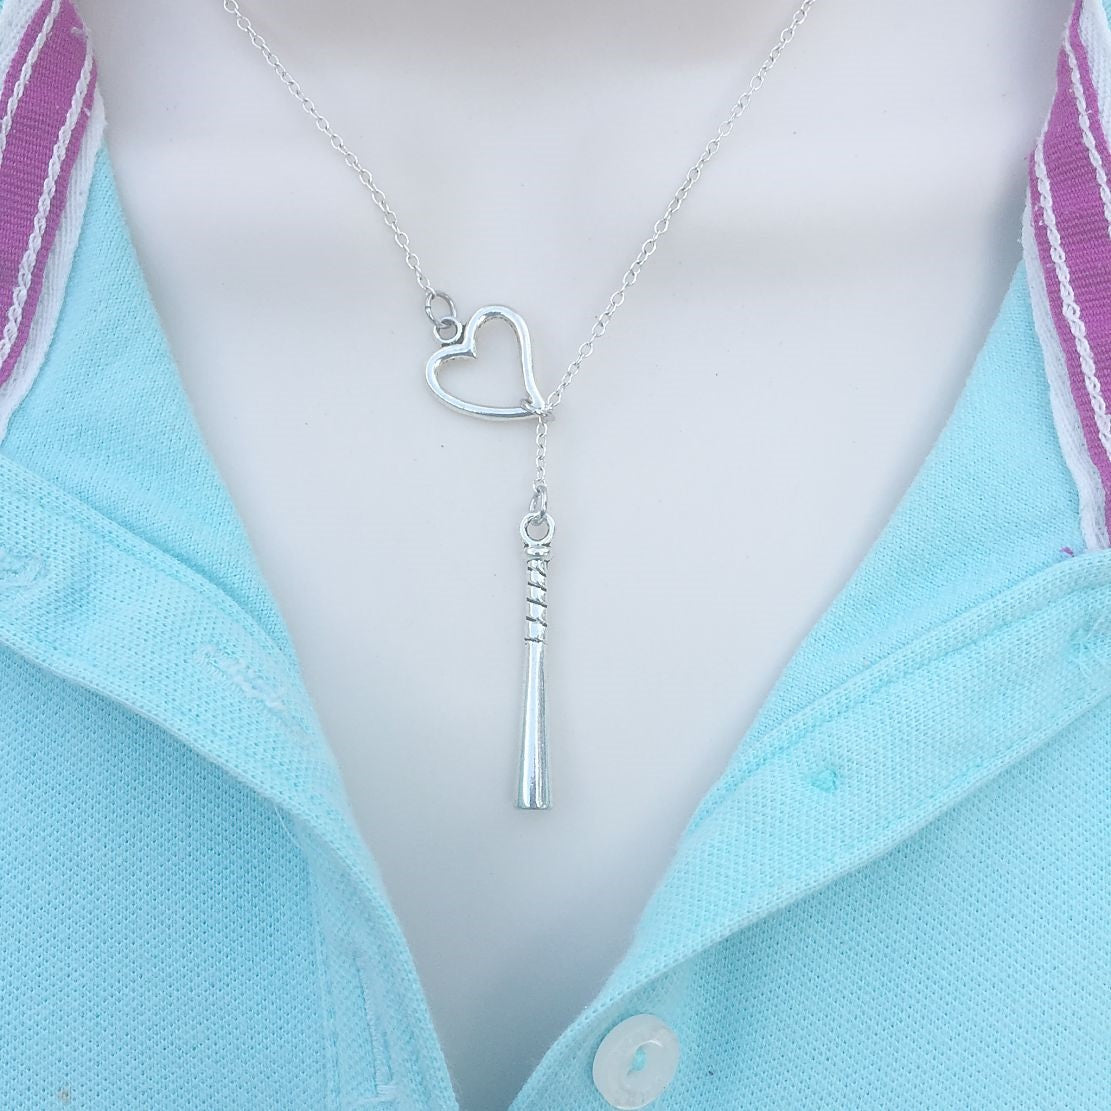 x-Large Baseball Bat Silver Lariat Y Necklace.